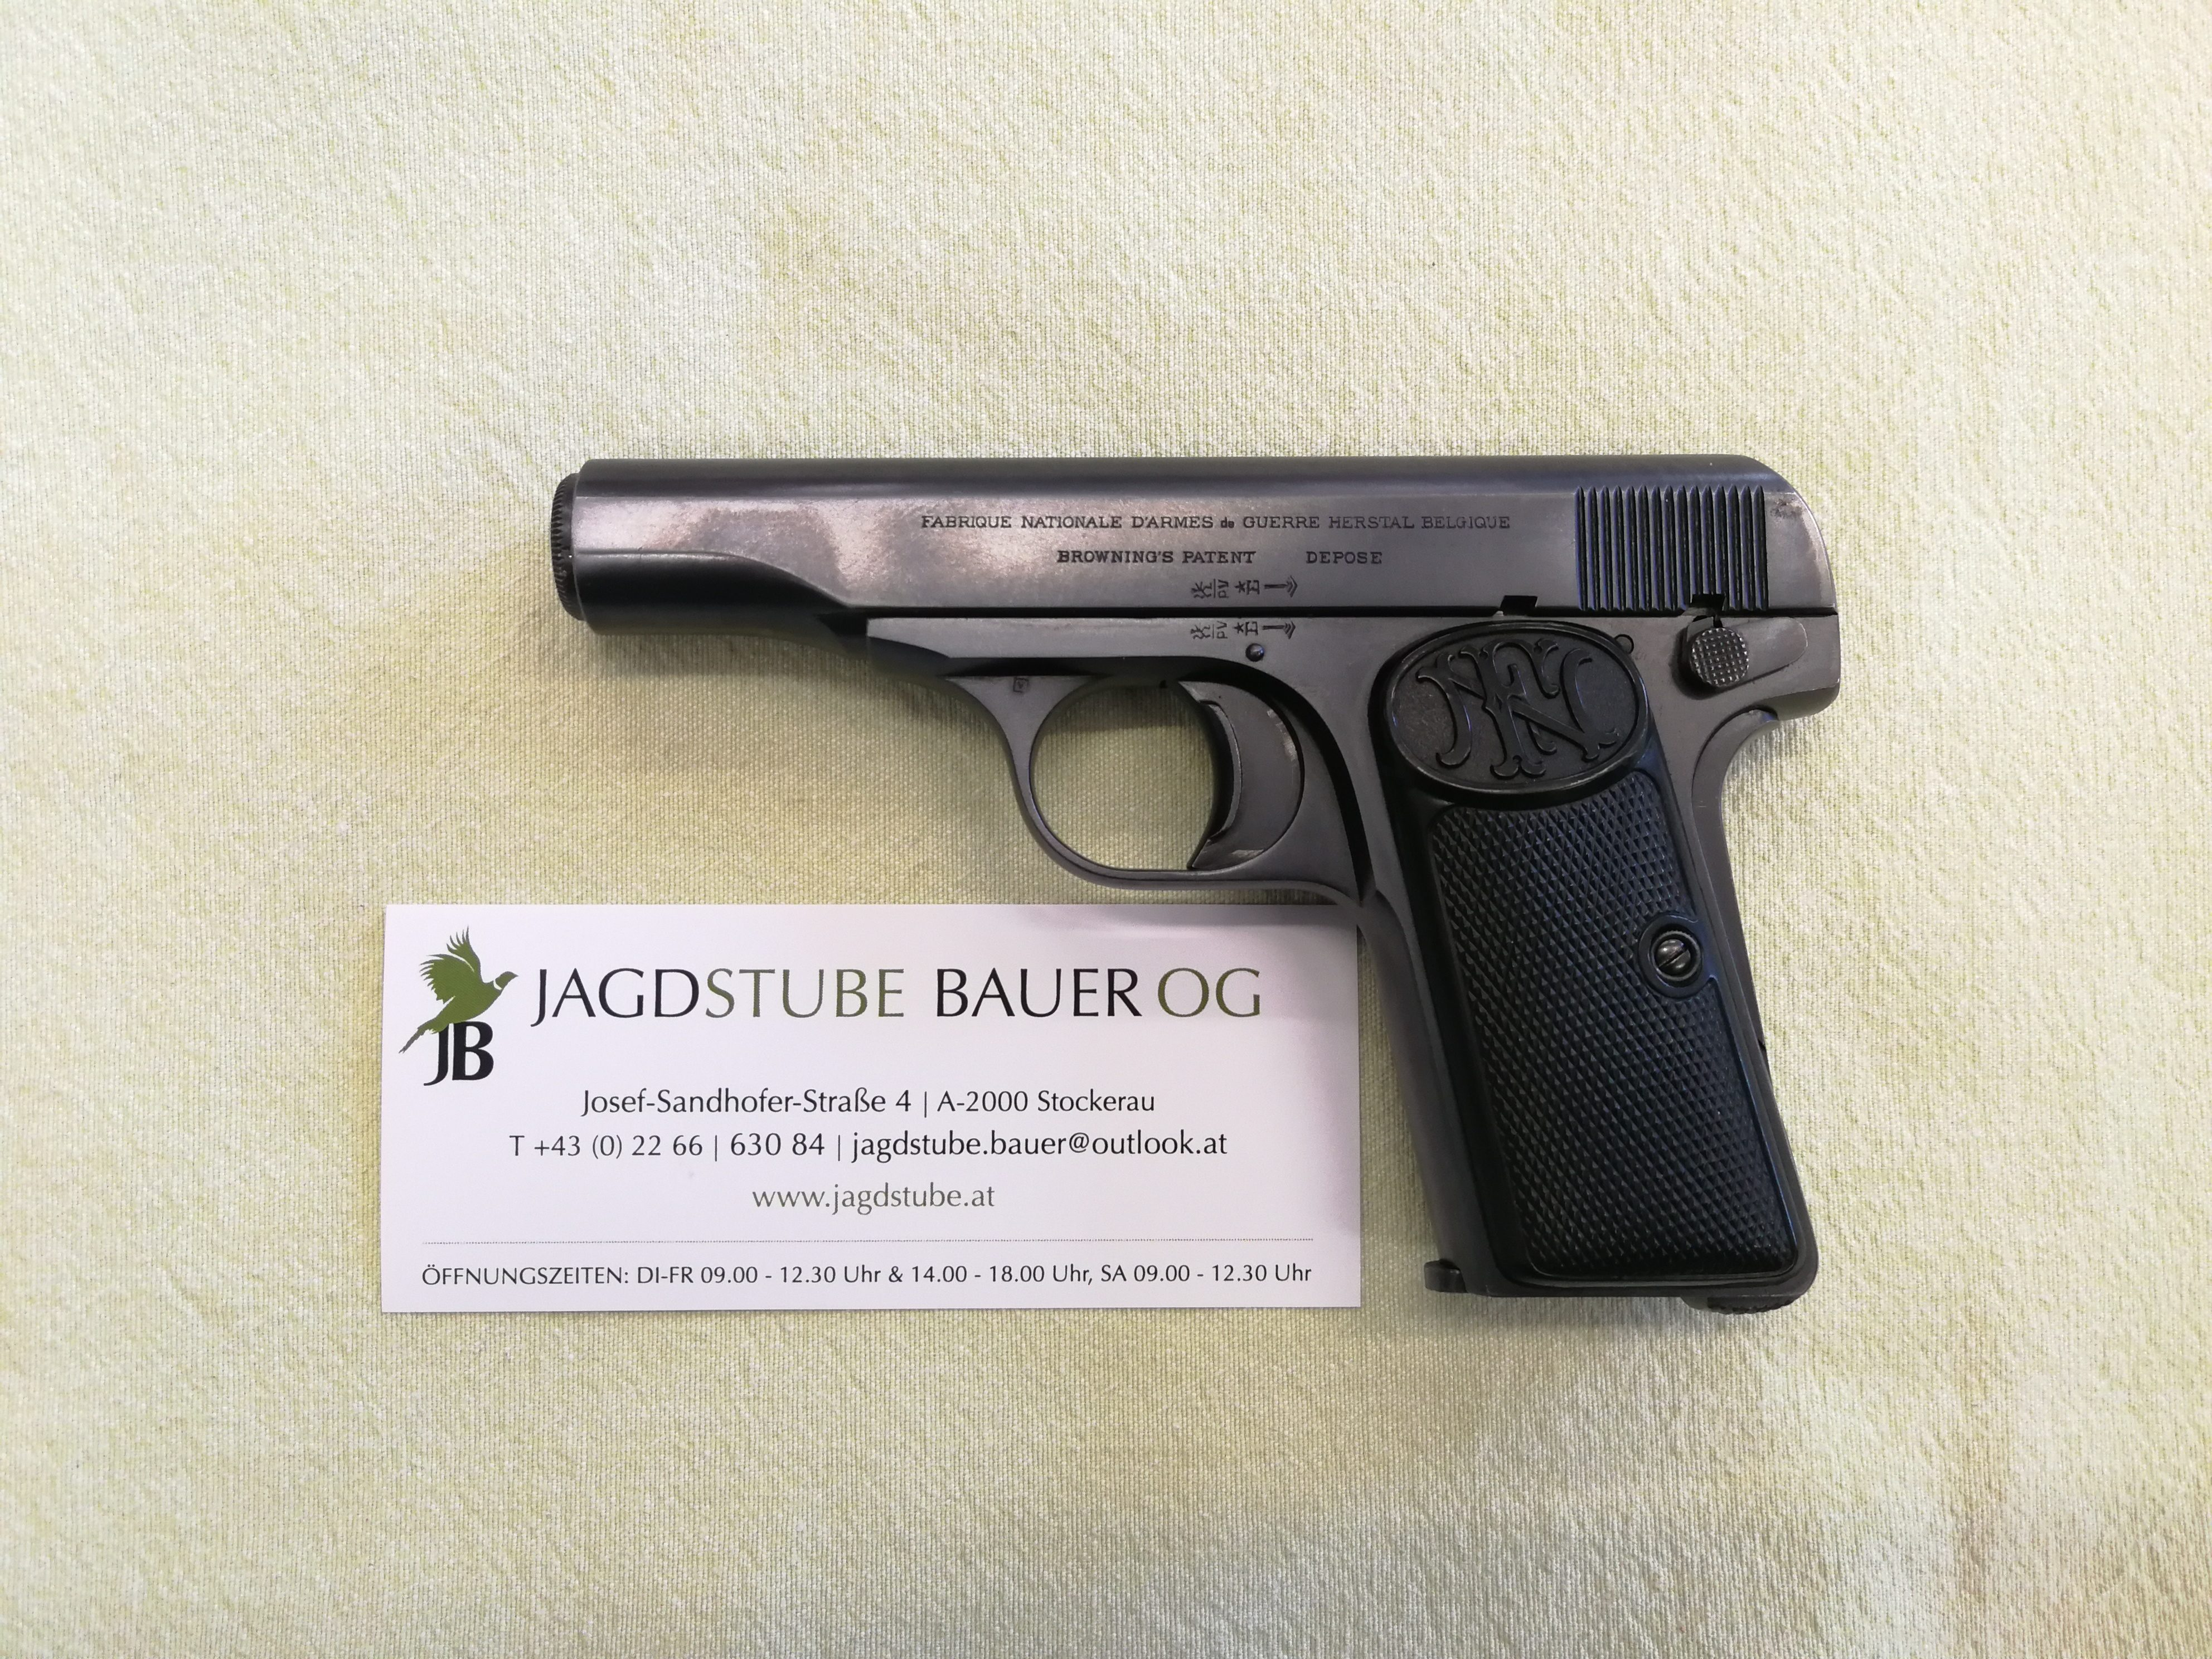 FN Browning Modell 1910, 7,65mm Browning (.32 ACP), Pistole